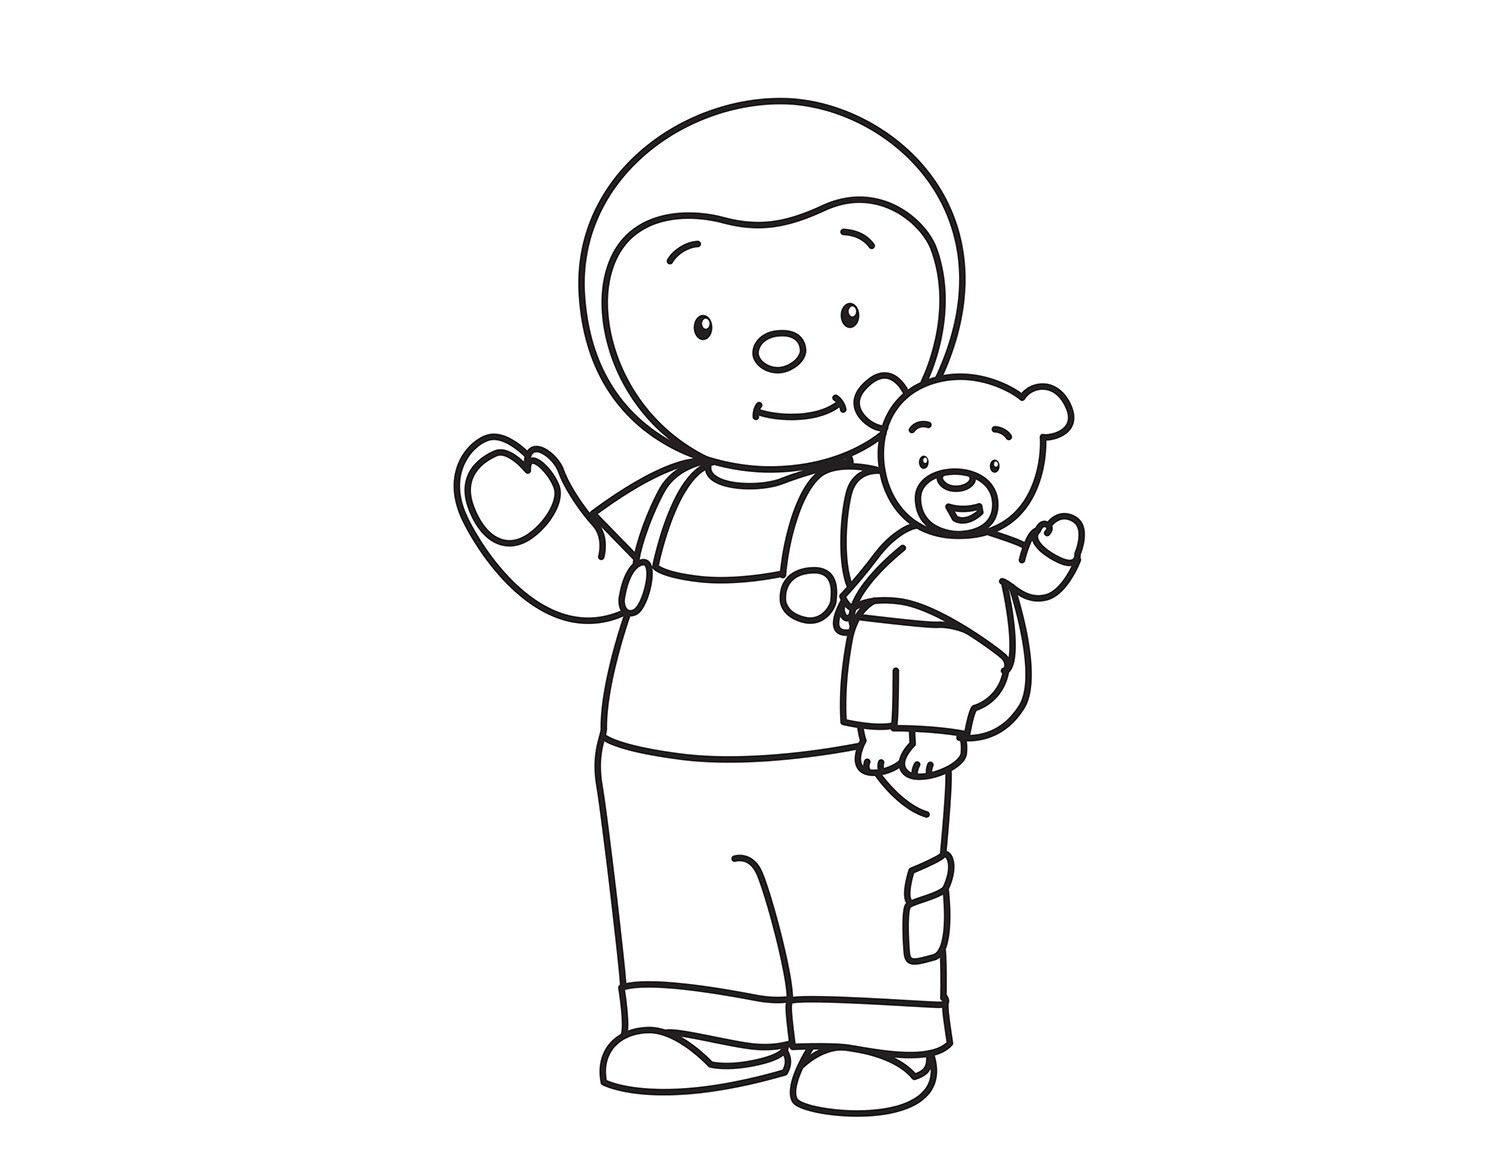 Coloriage Tchoupi Doudou 224 Imprimer Sur Coloriages Info The Tank Coloring Pages